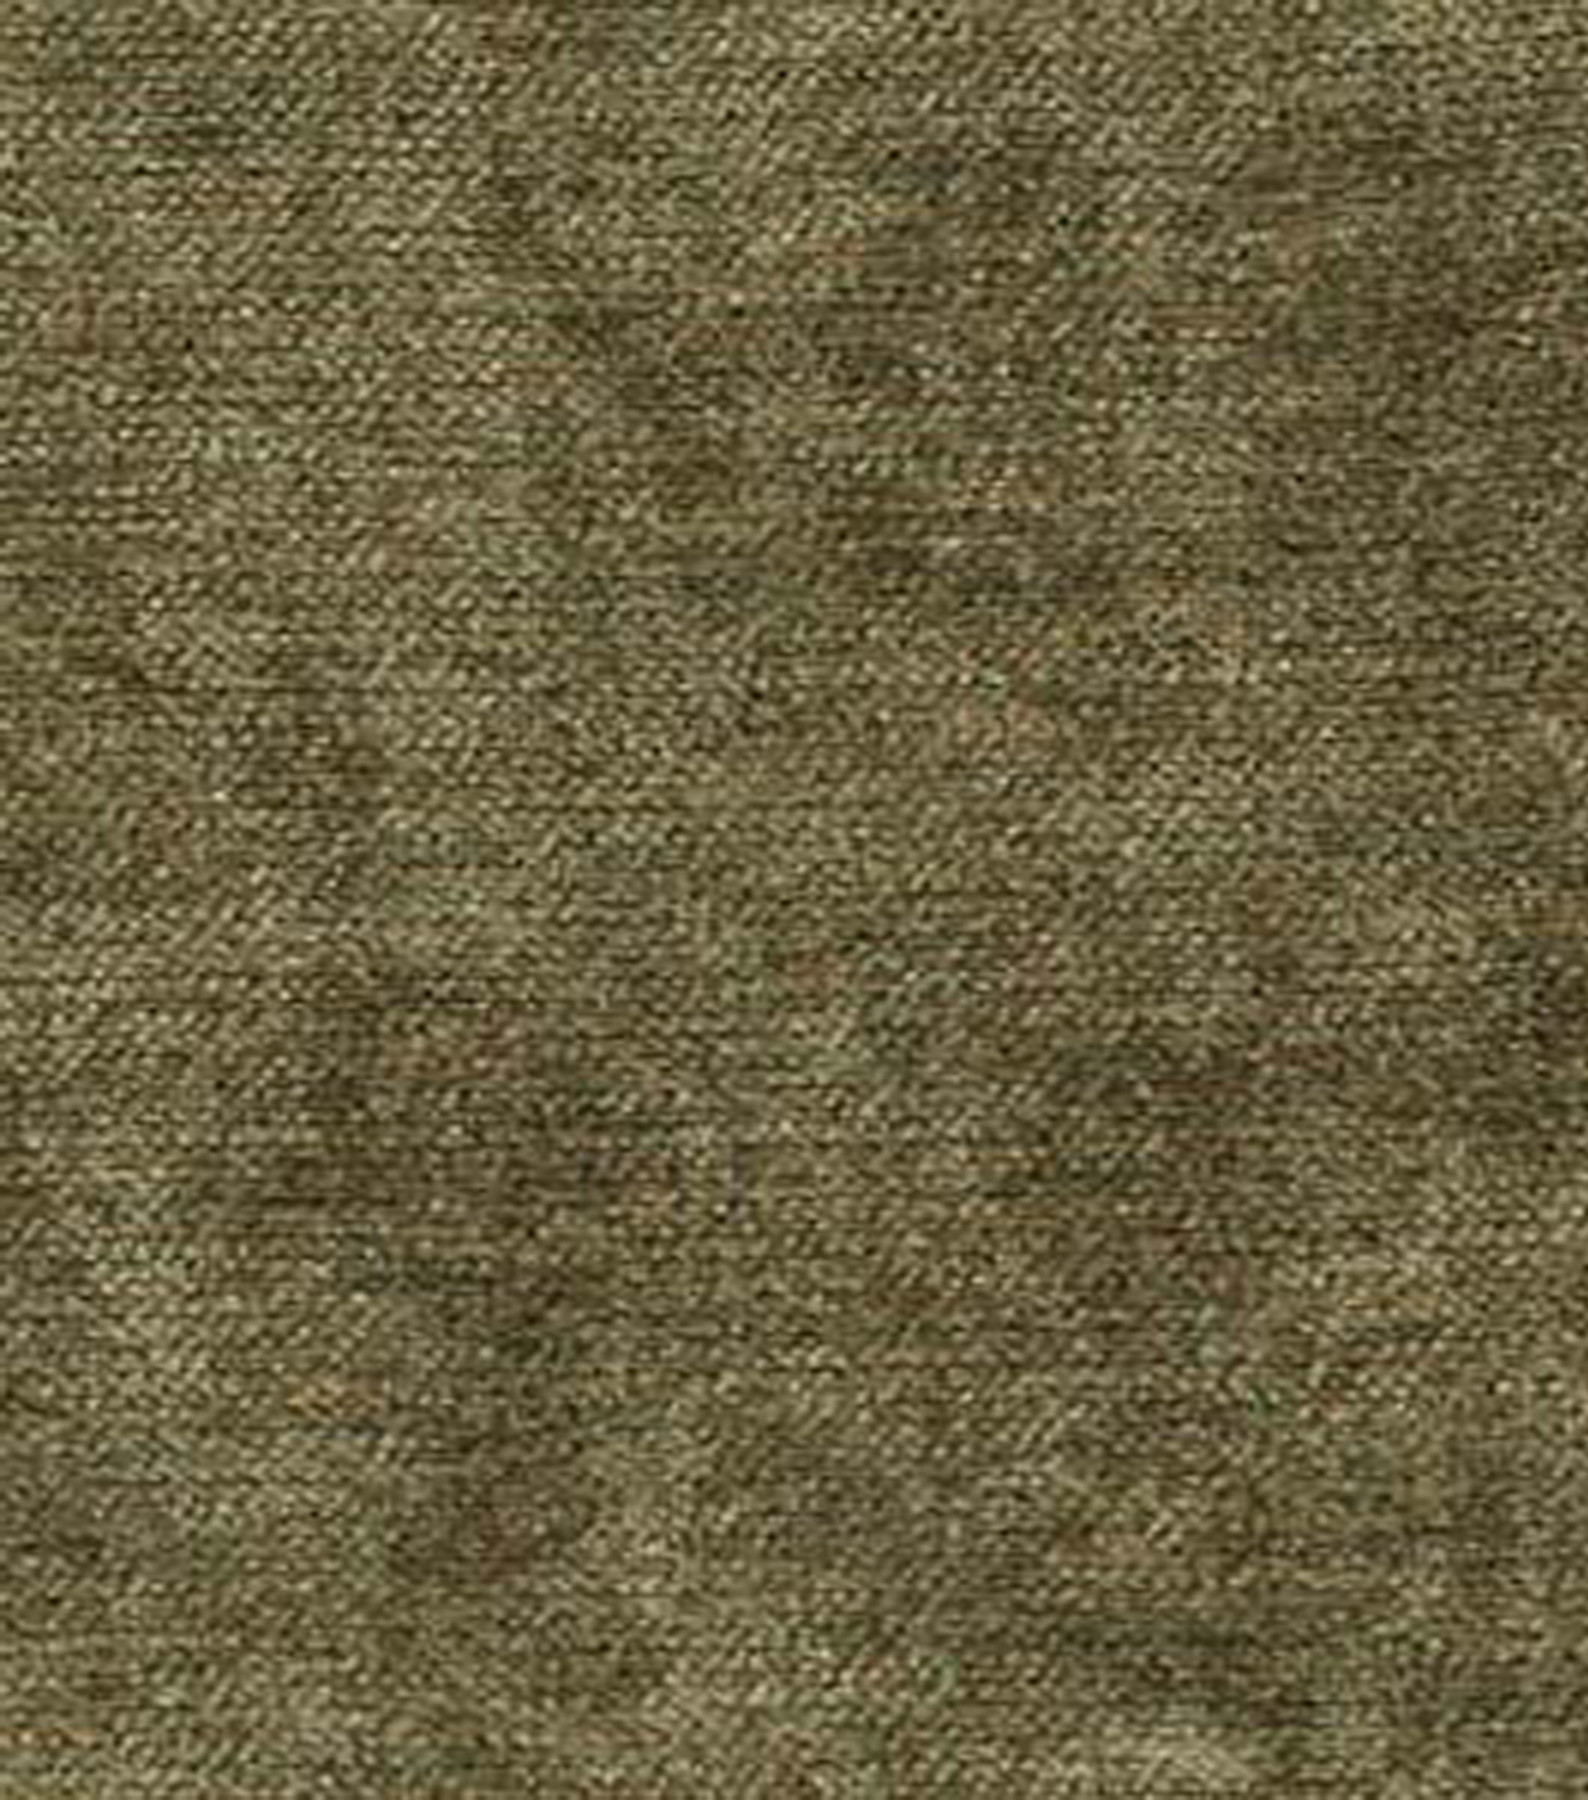 Home Decor 8\u0022x8\u0022 Fabric Swatch-Robert Allen Illumina Sage Fabric